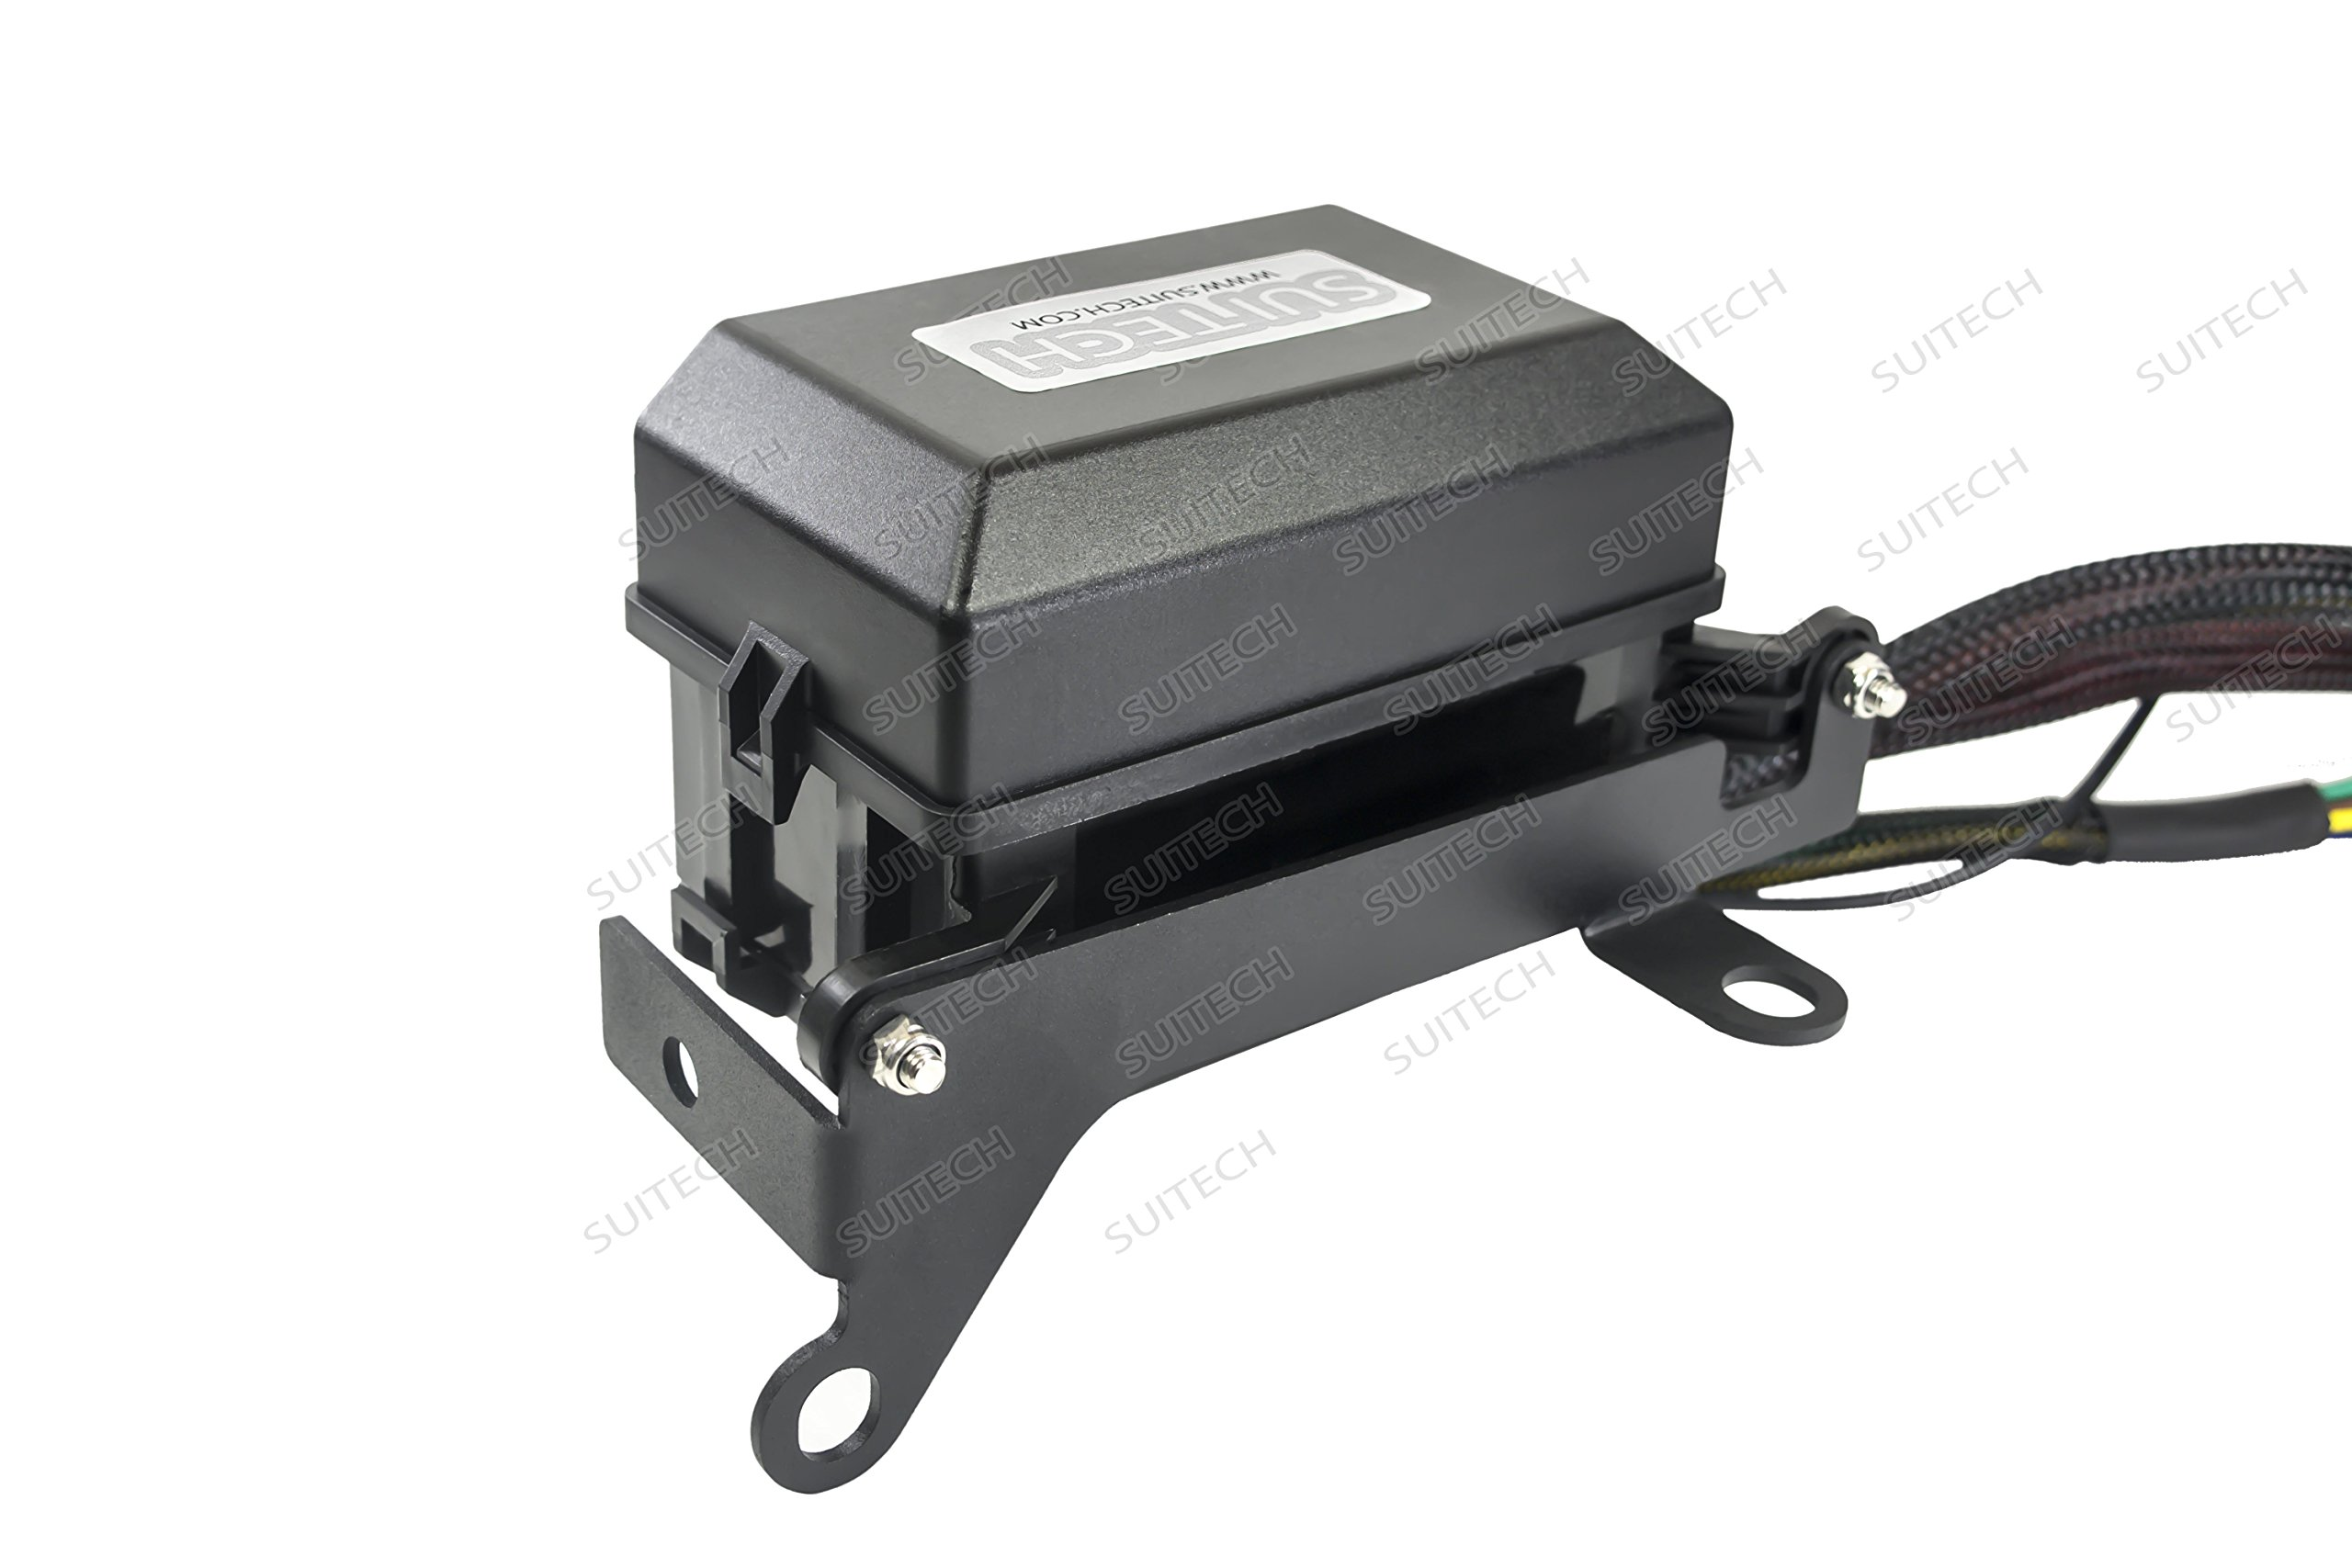 Jeep JK Control Box Electronic 6 Relay System Module Wiring